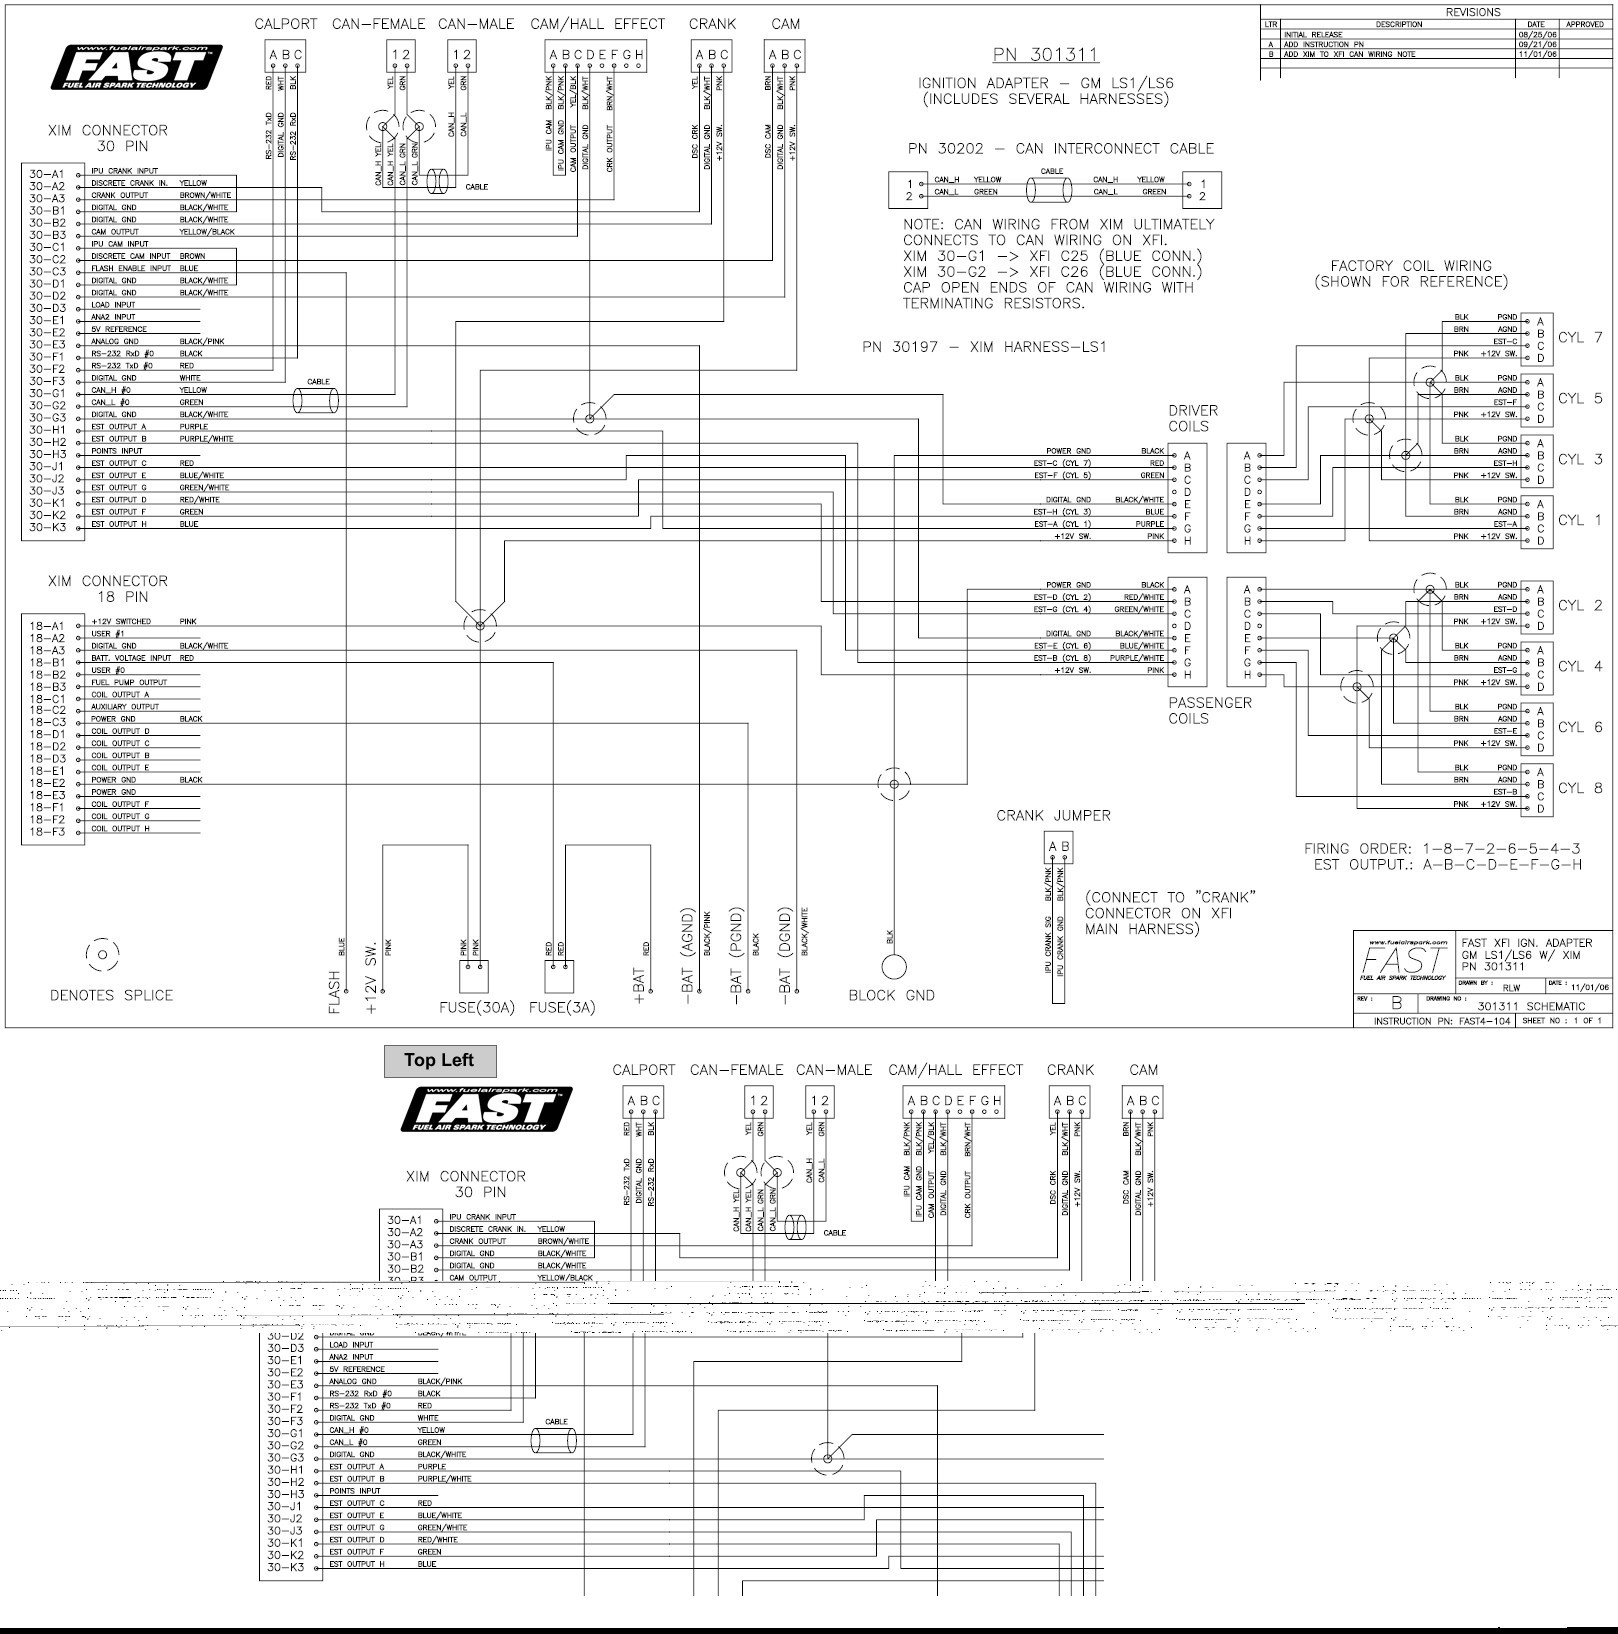 1991 Dodge Dynasty Wiring Diagram